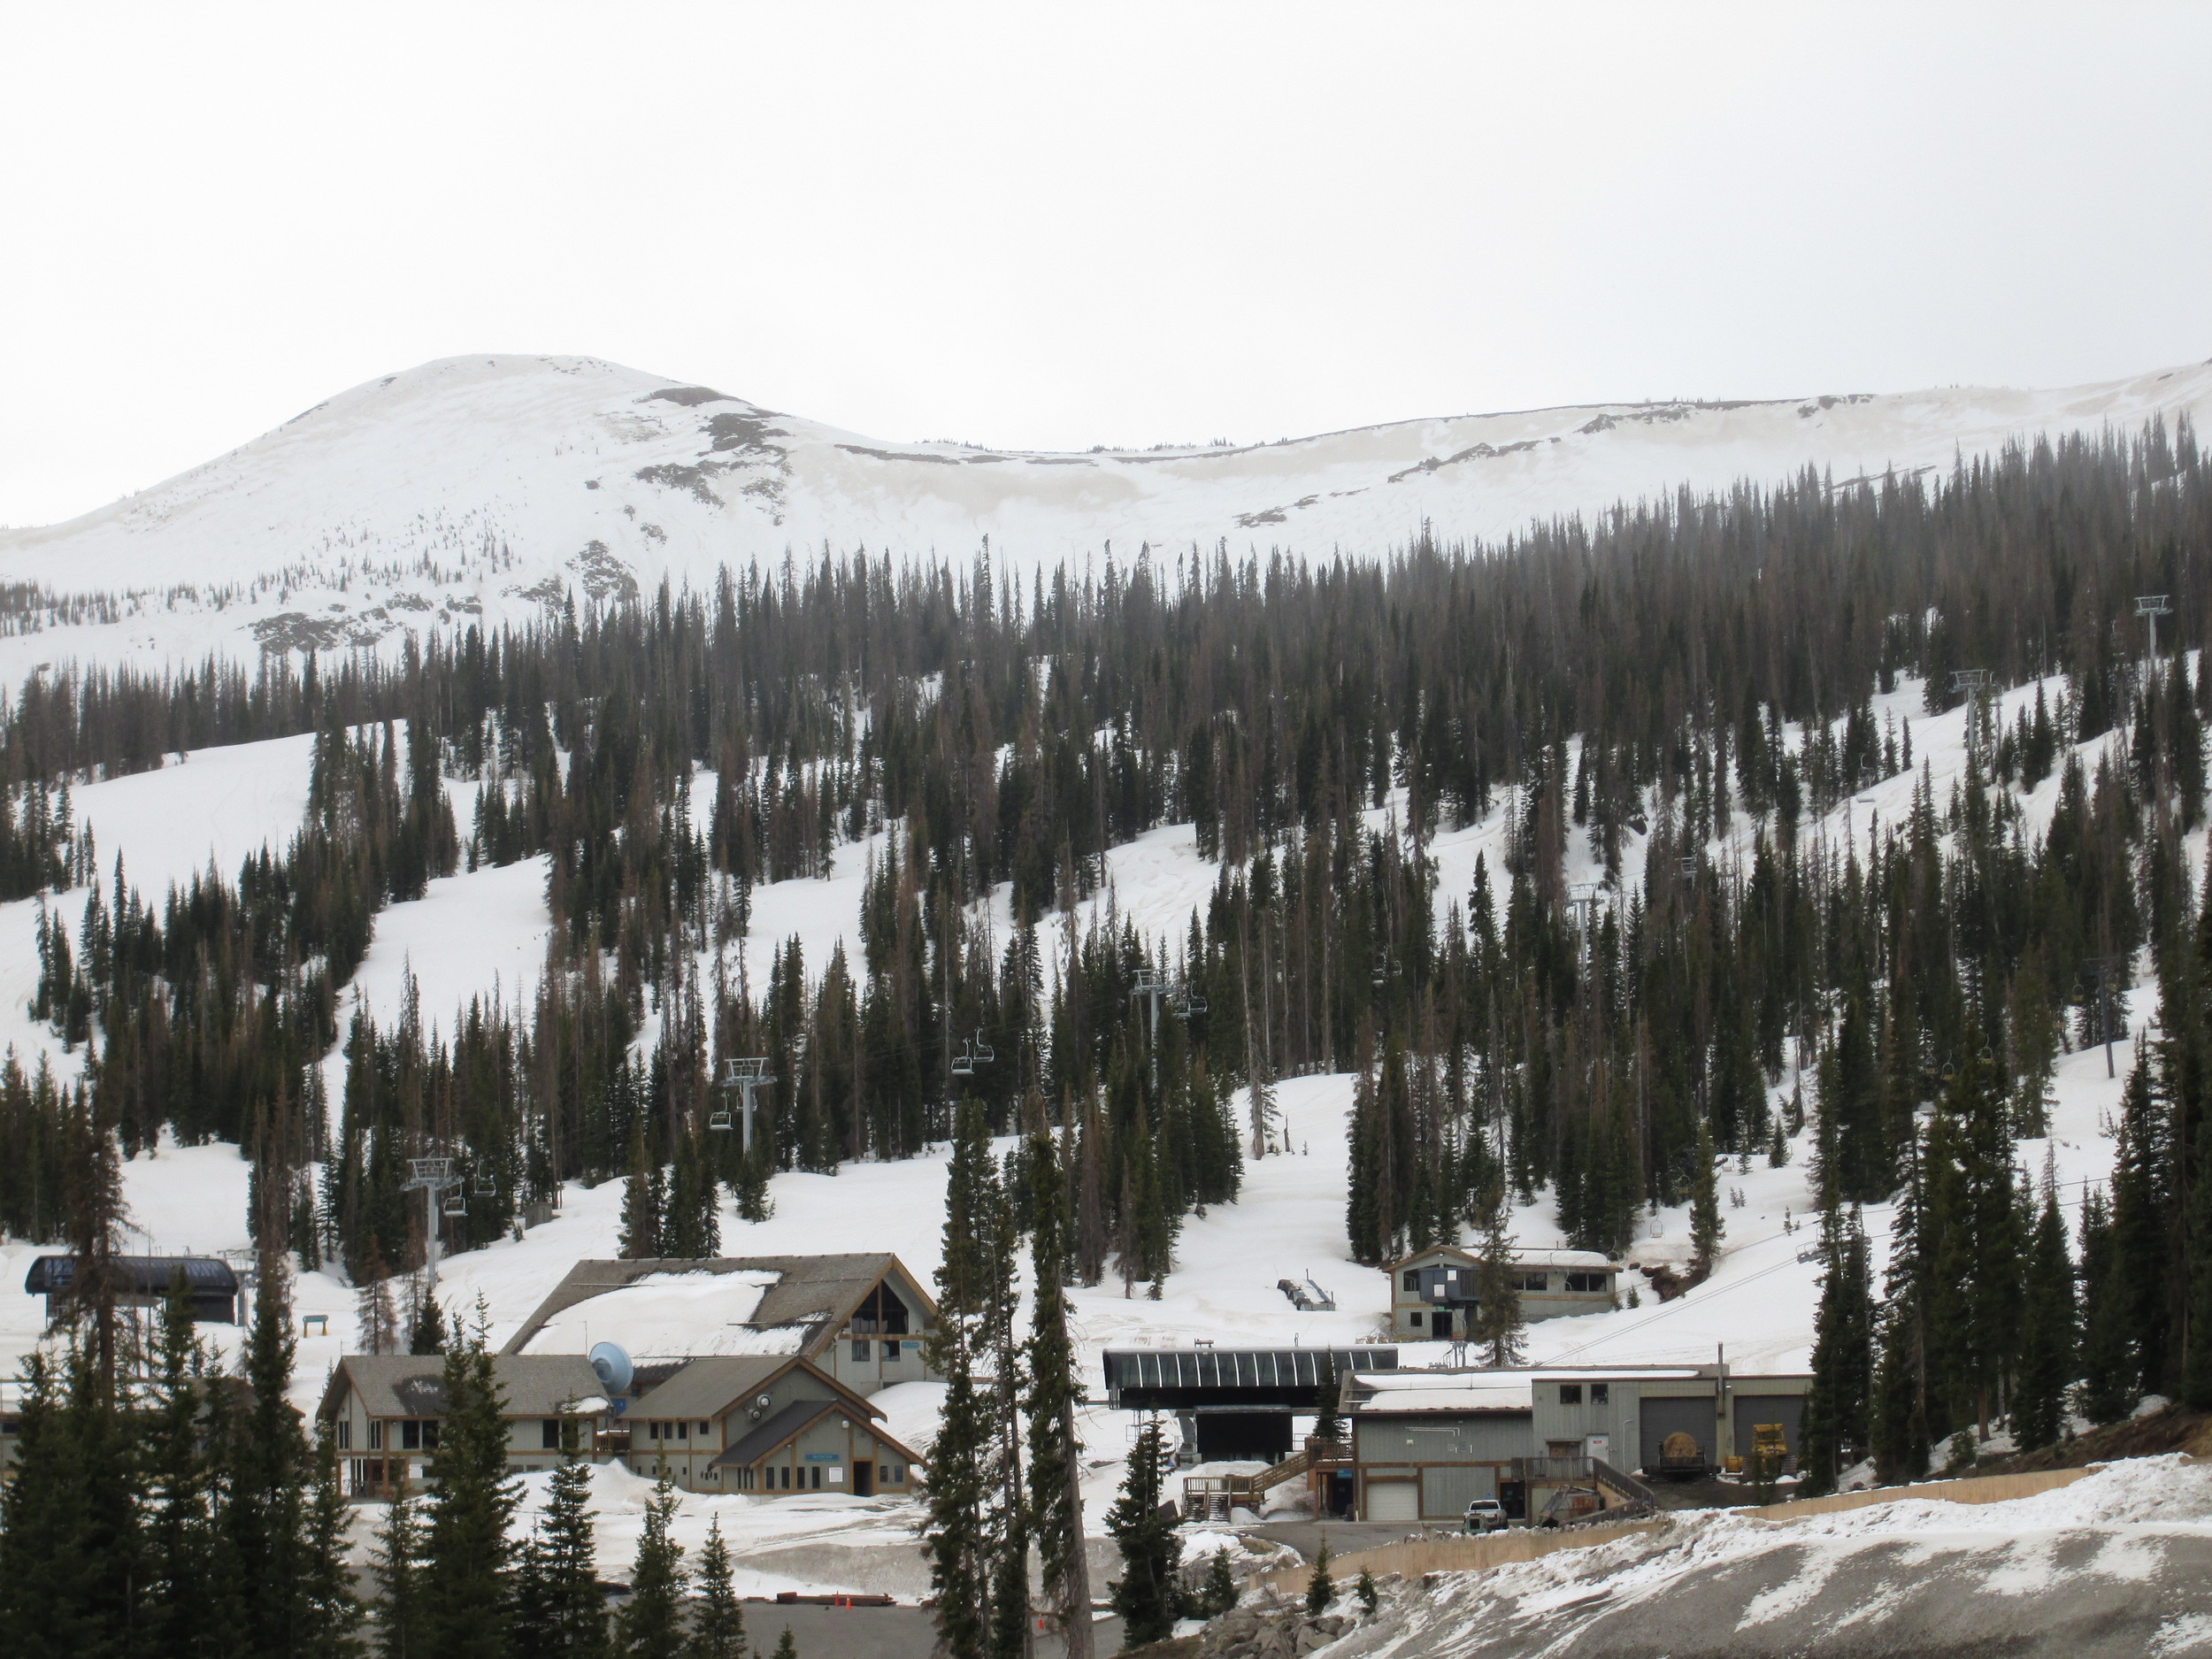 Wind stripping had removed recent snow and exposed dust layer D8 below the ridgeline at Wolf Creek Ski Area